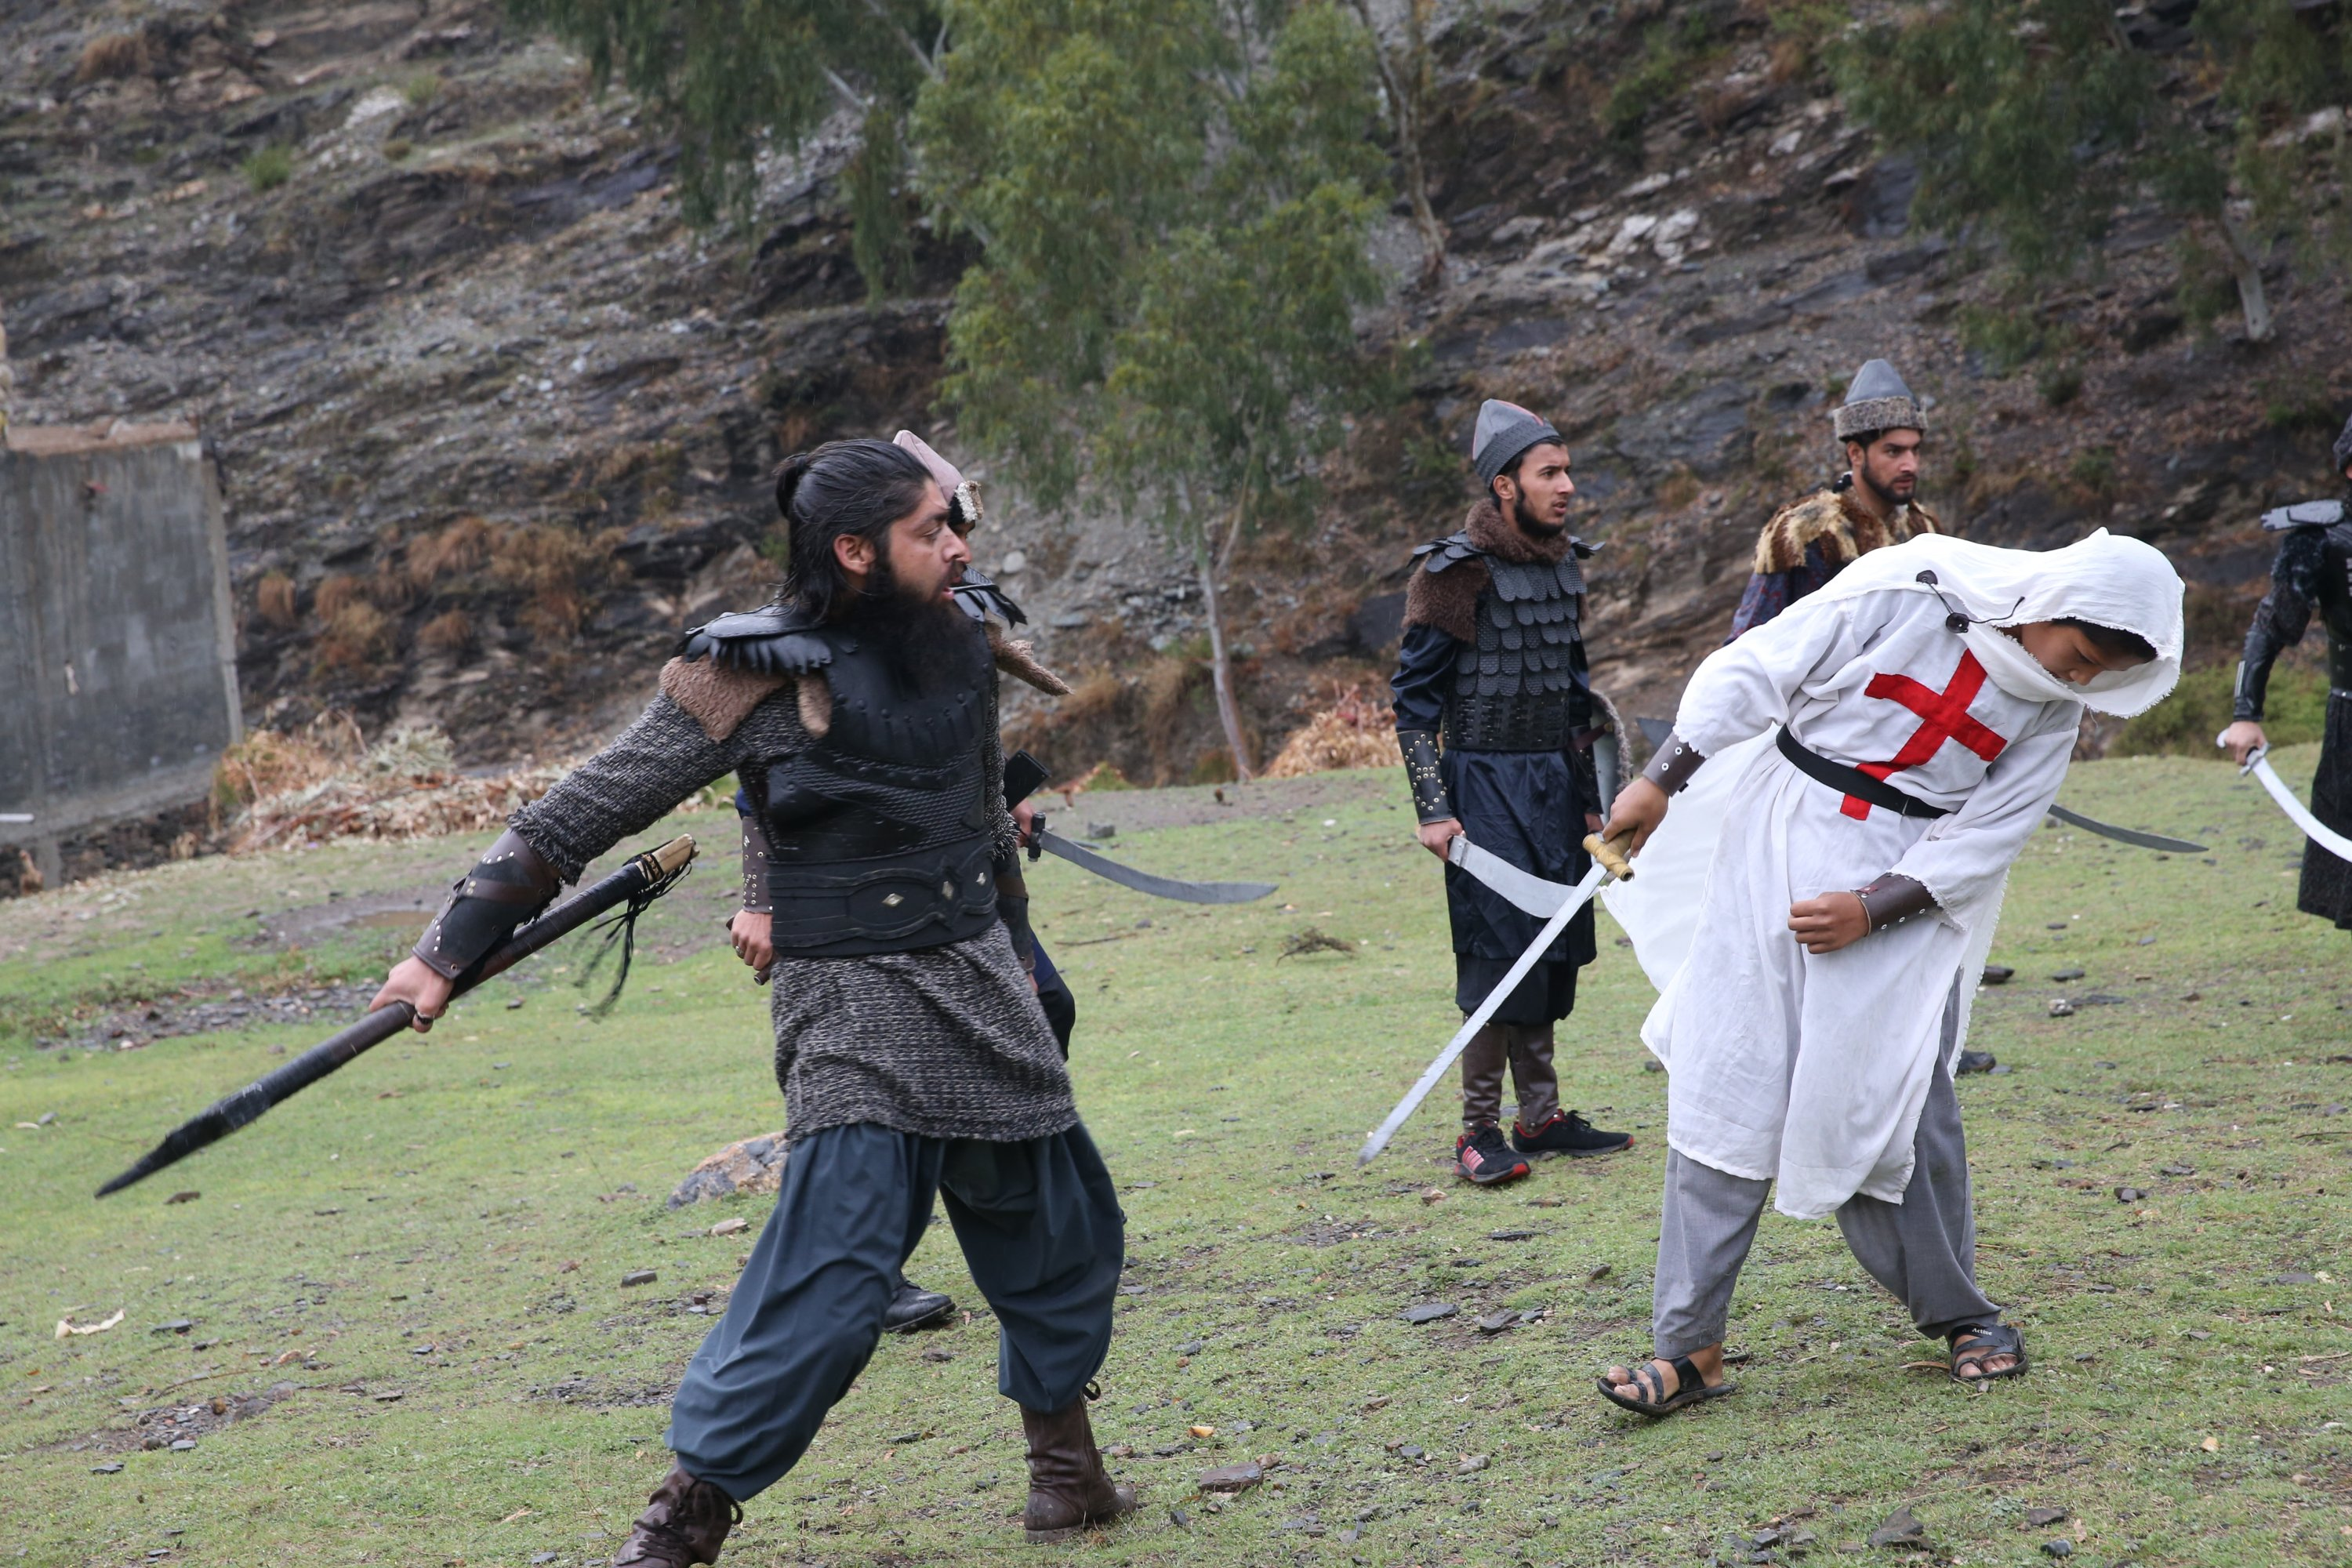 Youngsters act out a scene for their 'Pakistani Ertuğrul,' Swat, Pakistan, March 25, 2021. (AA Photo)